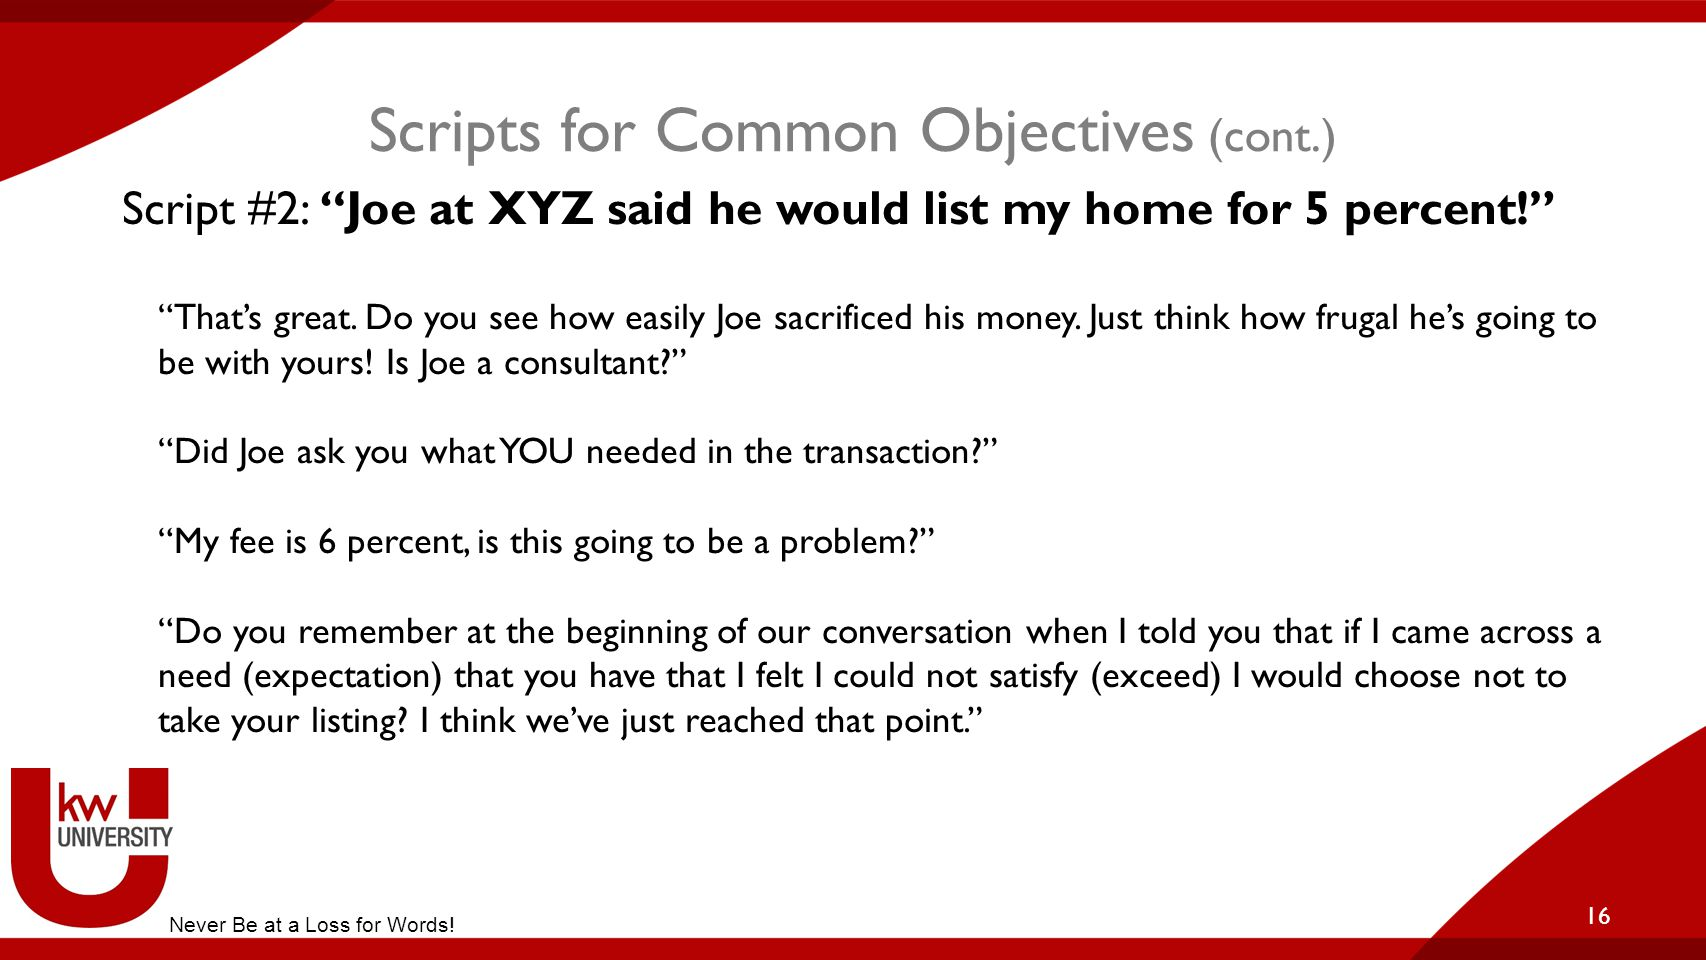 """Scripts for Common Objectives (cont.) 16 Script #2: """"Joe at XYZ said he would list my home for 5 percent!"""" """"That's great. Do you see how easily Joe sa"""